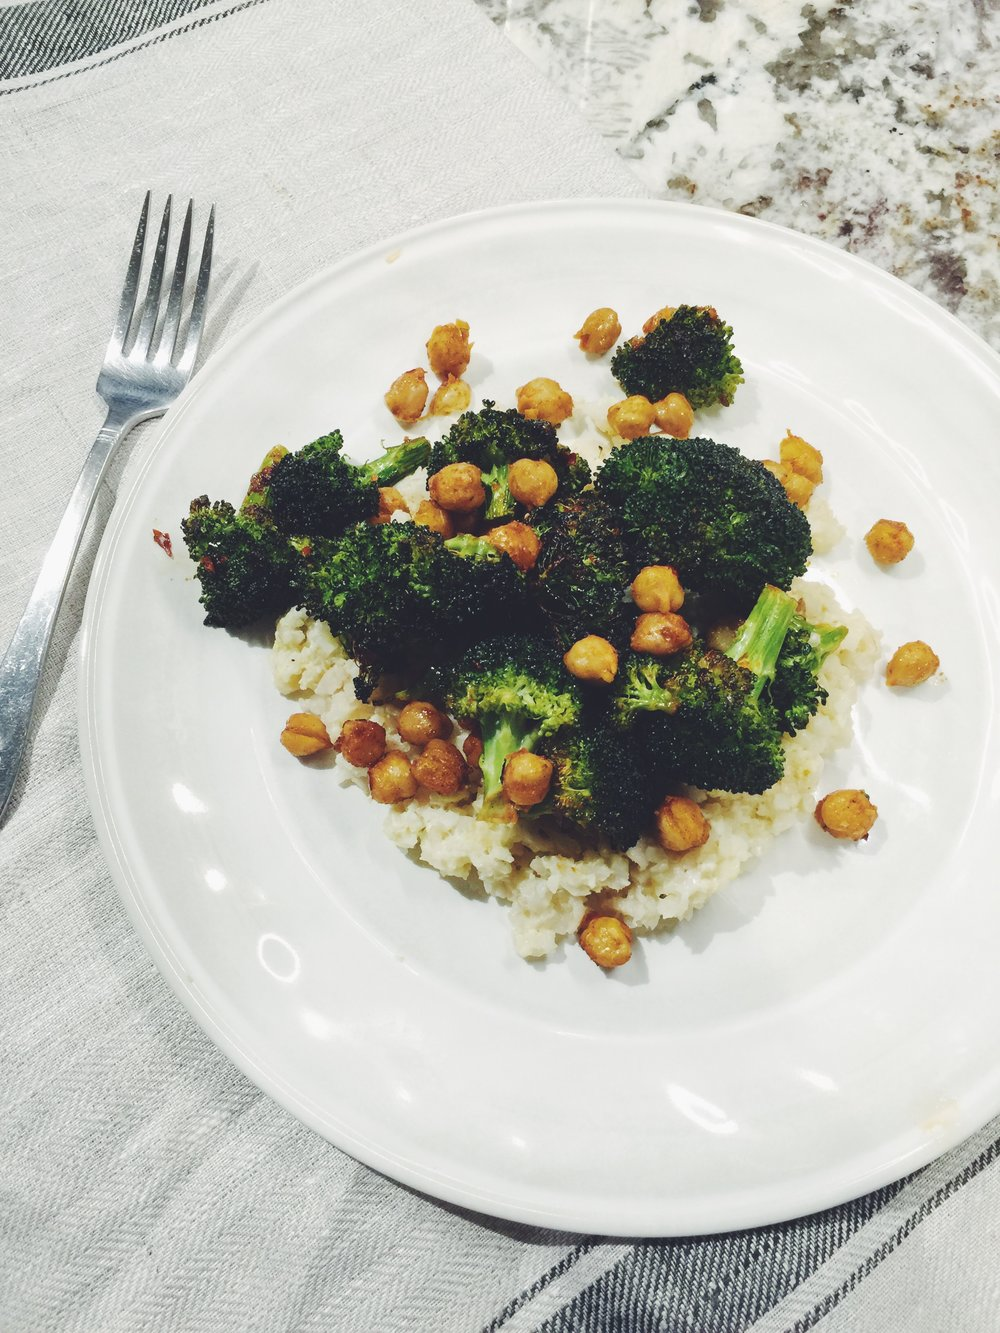 chili-glazed broccoli and chickpeas over cauliflower rice